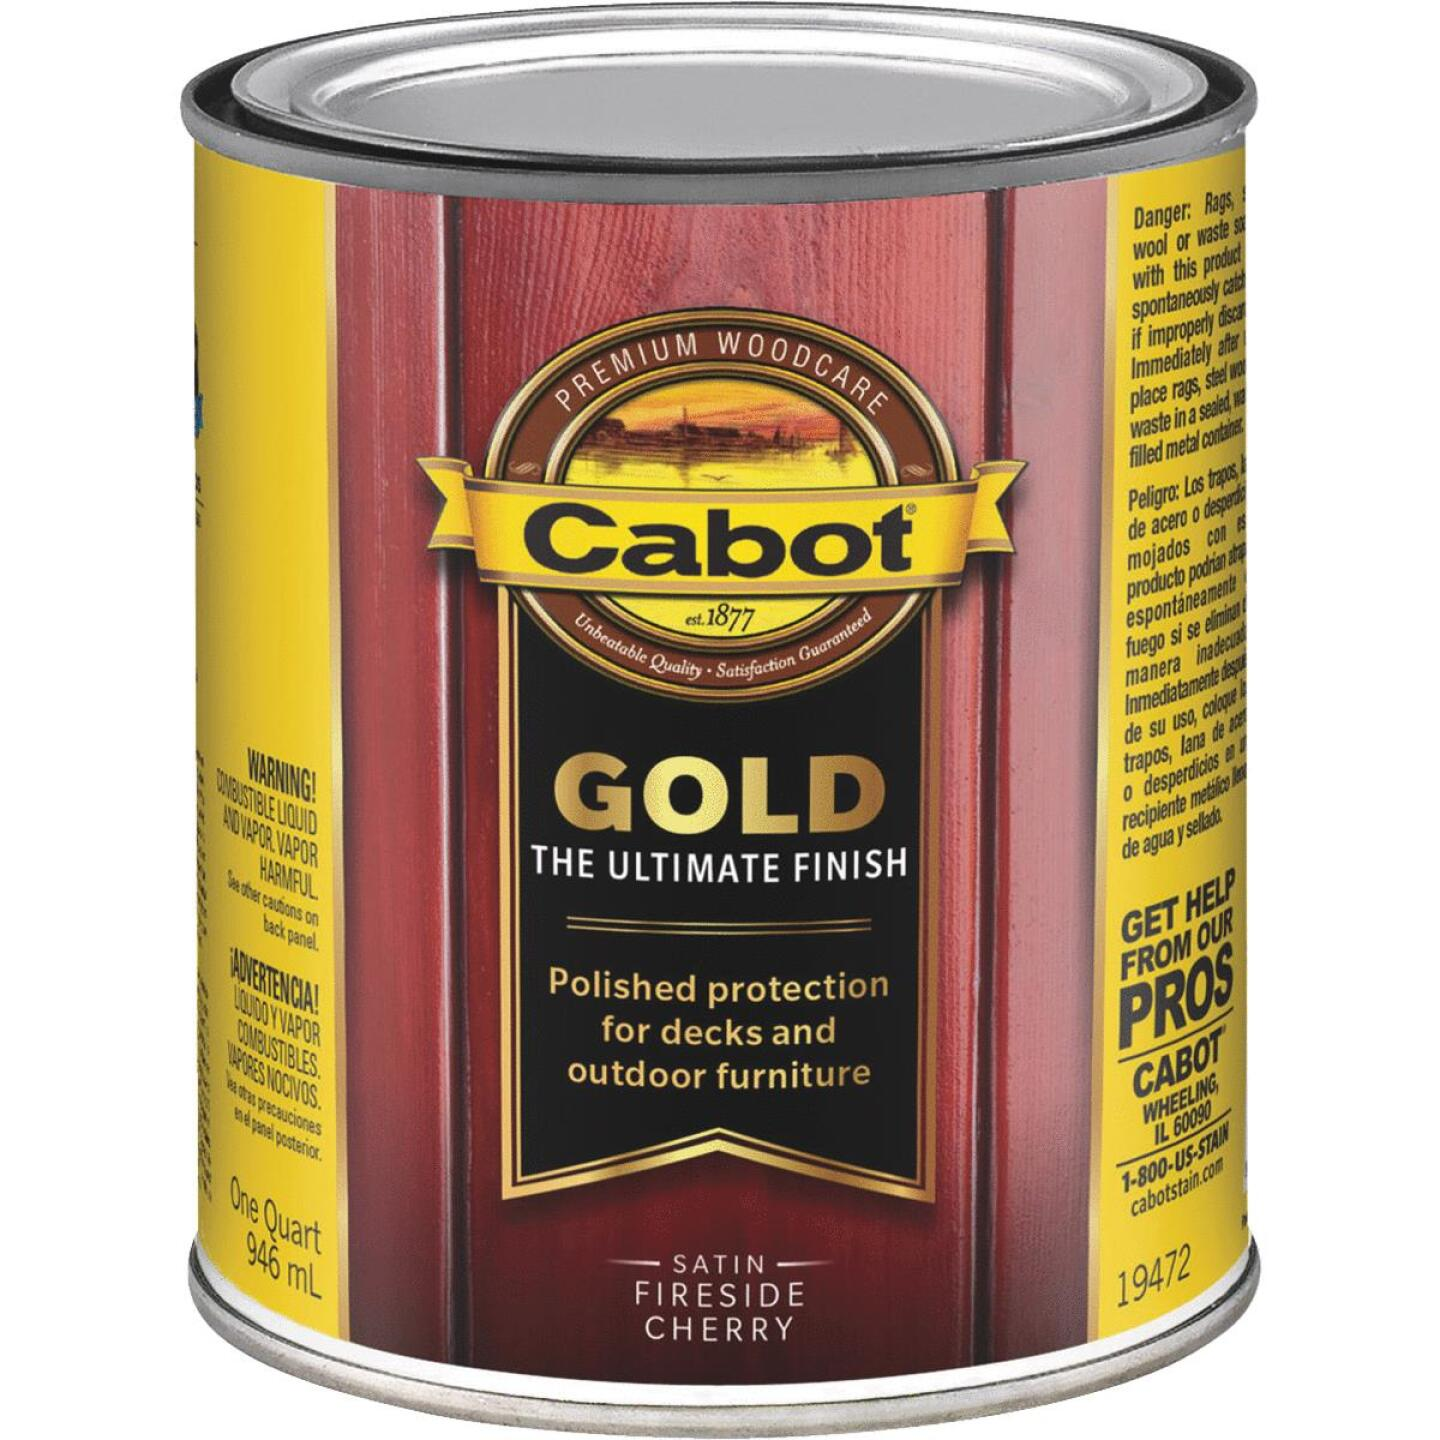 Cabot Gold Low VOC Exterior Stain, Fireside Cherry, 1 Qt. Image 1